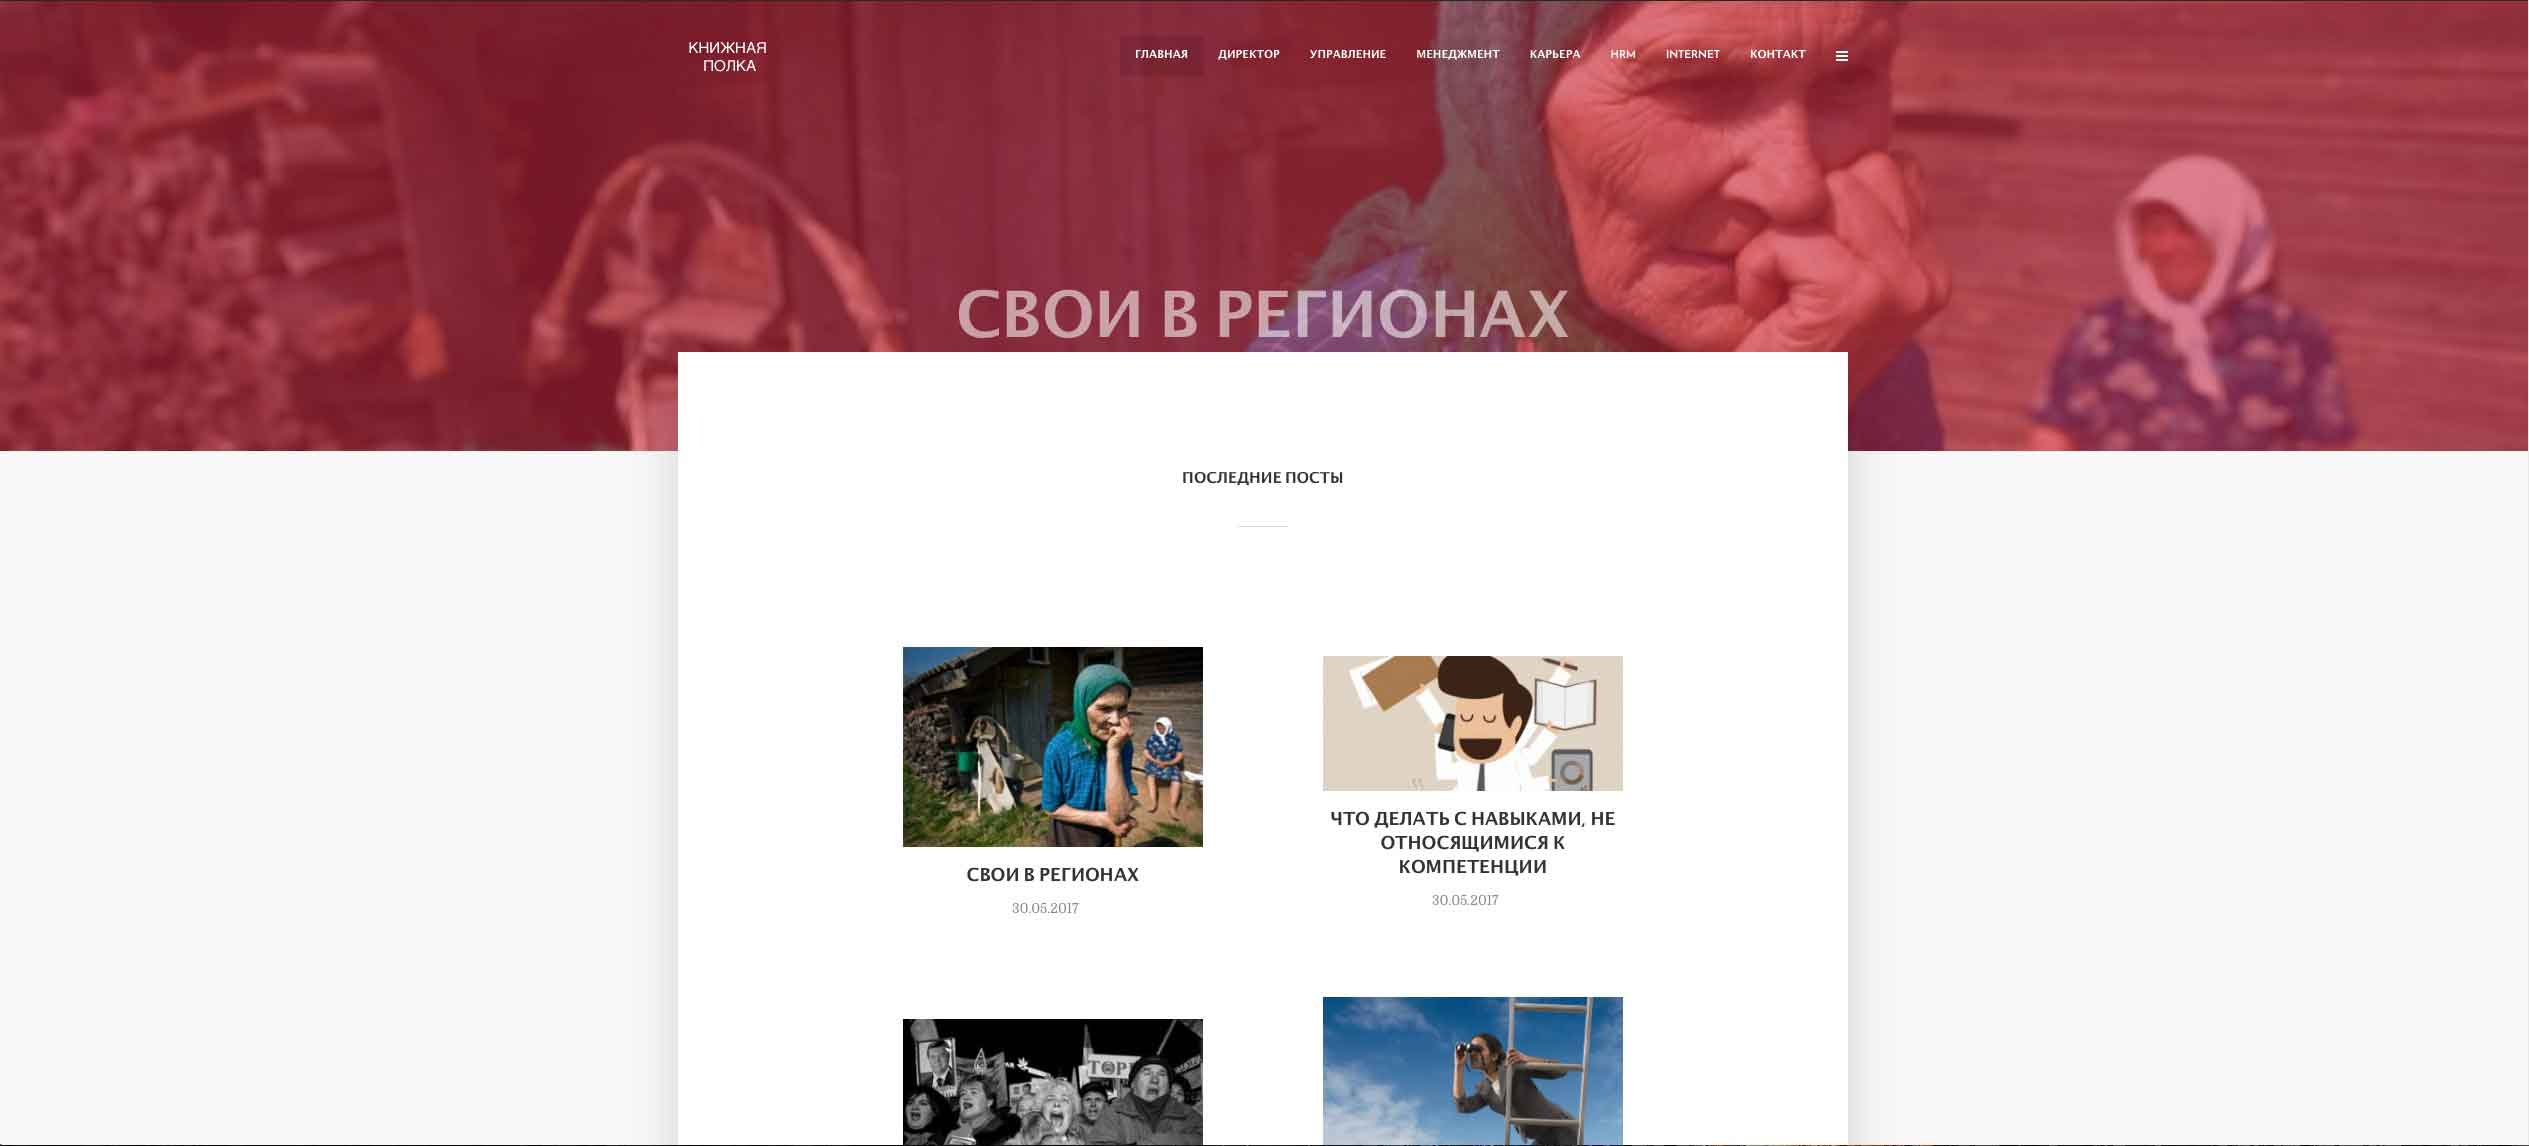 хороший шаблон wordpress,